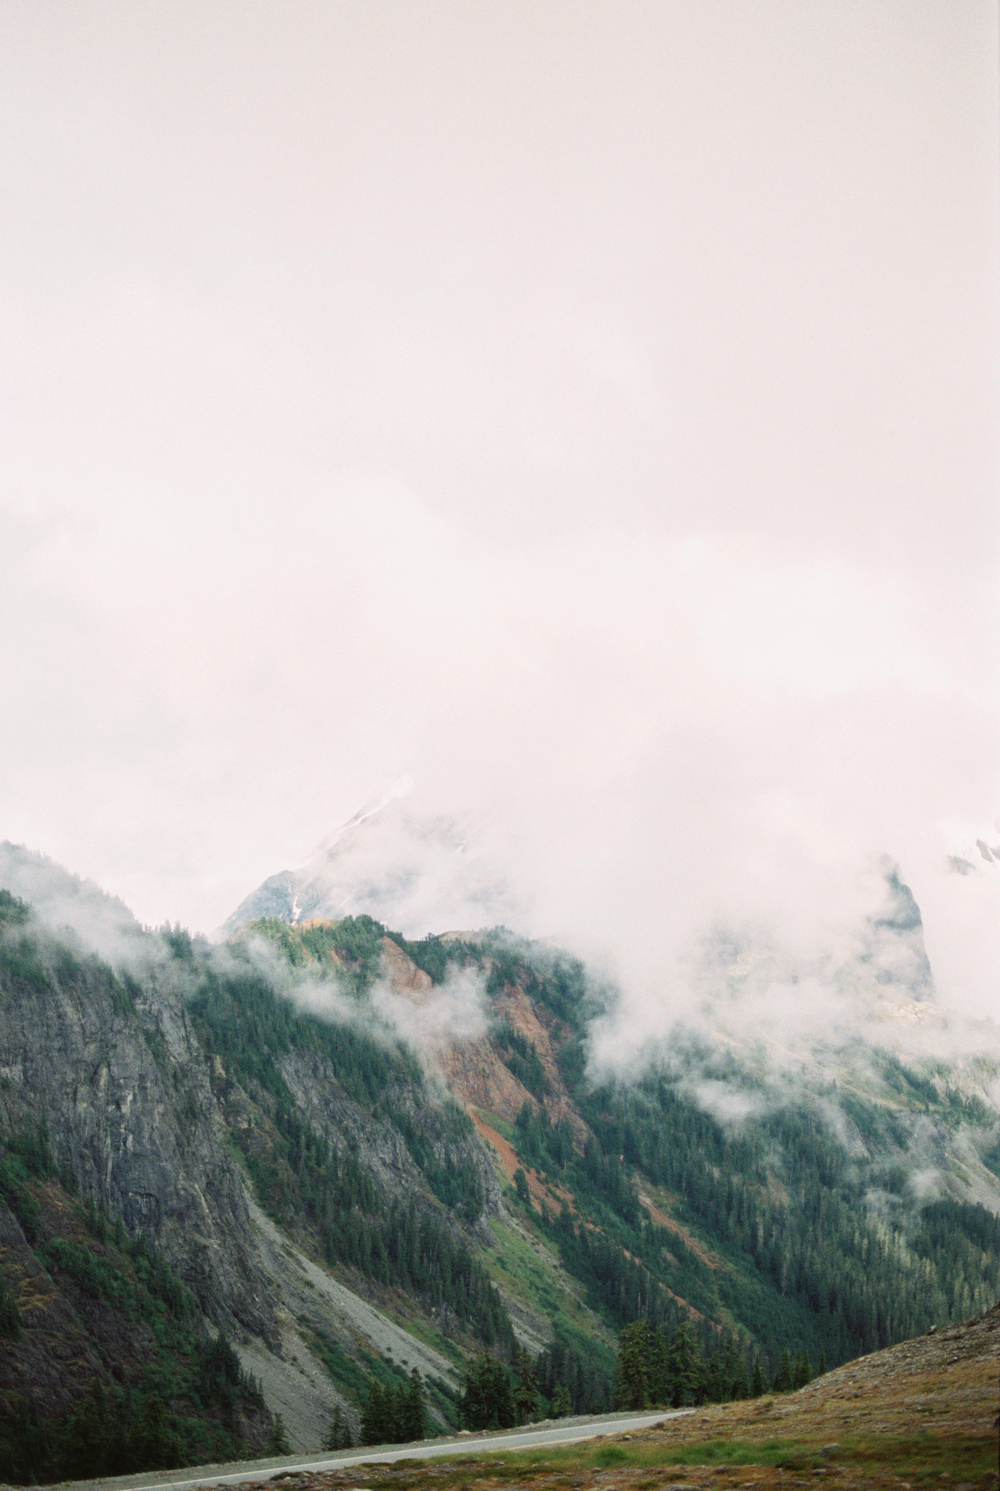 Mt. Baker - Washington Elopement Photographer - Washington Travel - Amanda Lenhardt Photography